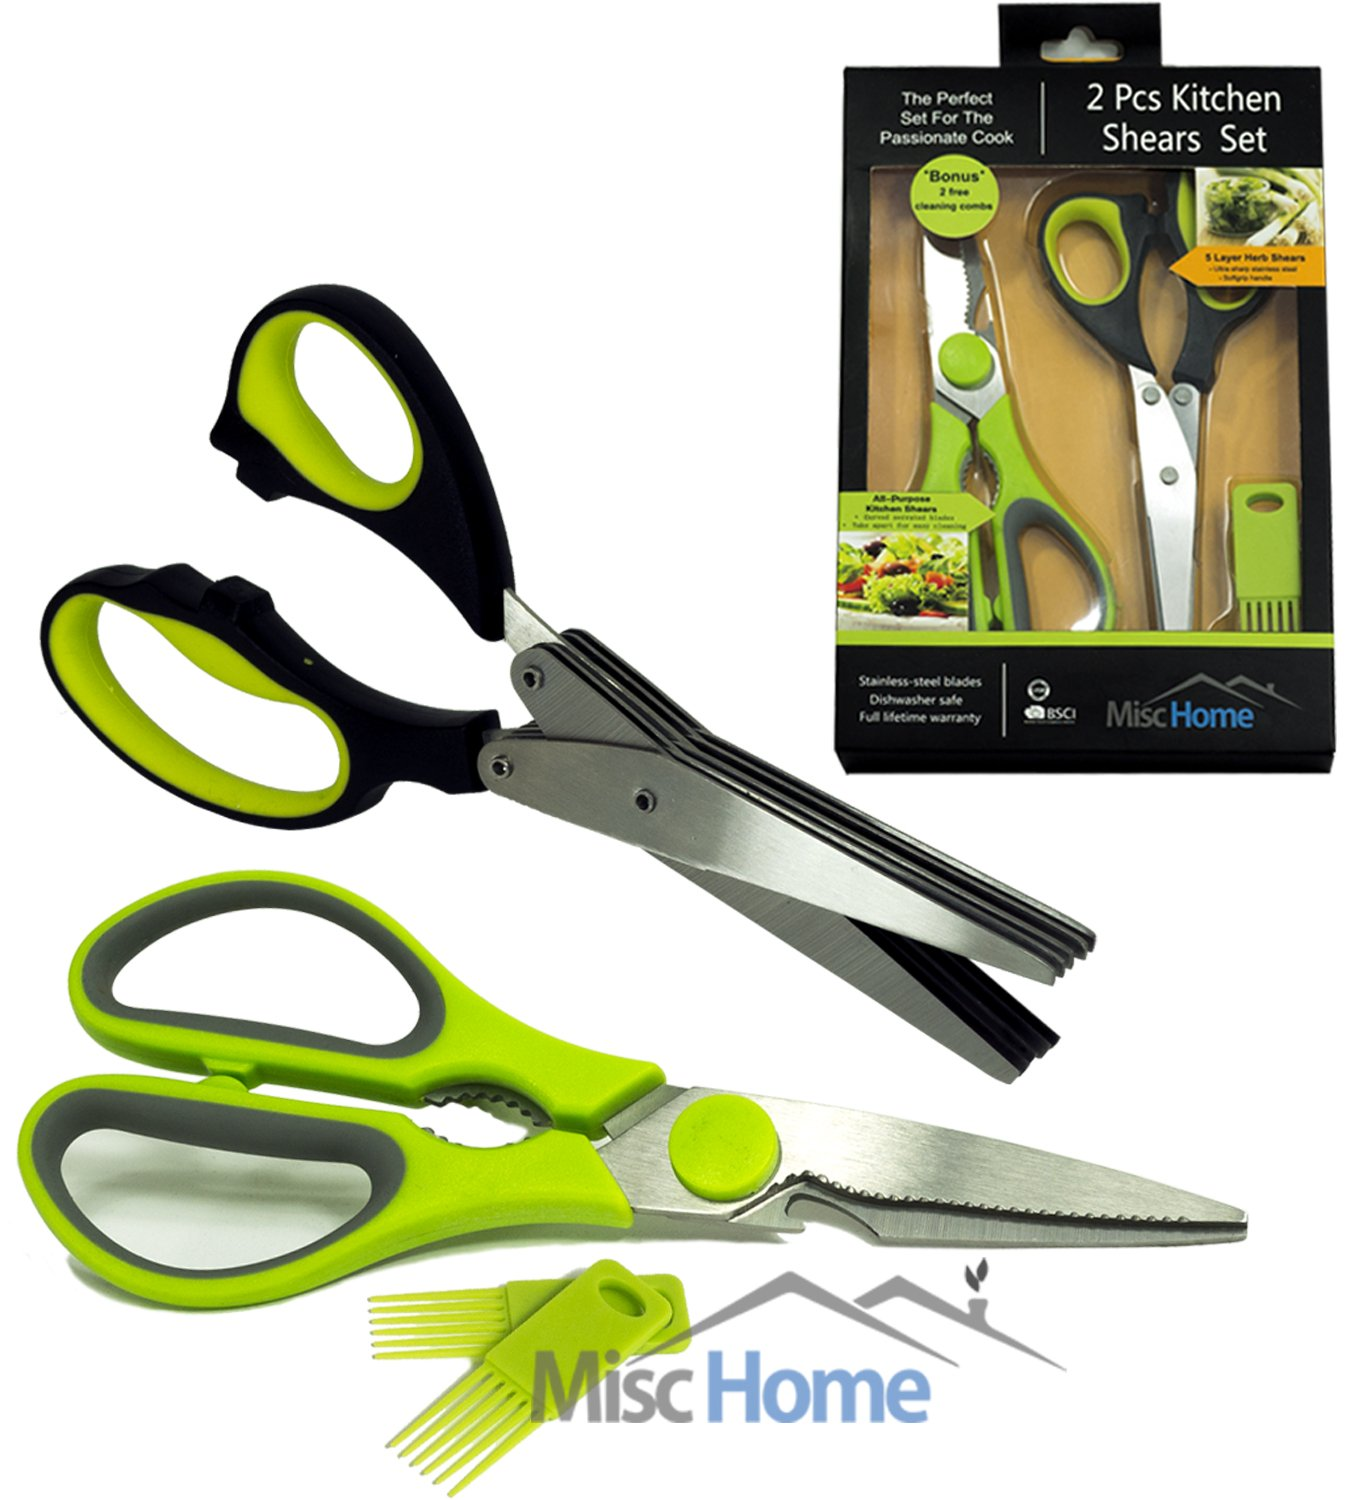 [BONUS SET] 2 Pcs Heavy Duty Kitchen Shears & Gourmet Herb Scissors with 2 Bonus Blade Combs Multi-Purpose Kitchen Scissors Made from Stainless Steel Life-Time Guarantee Dishwasher Safe